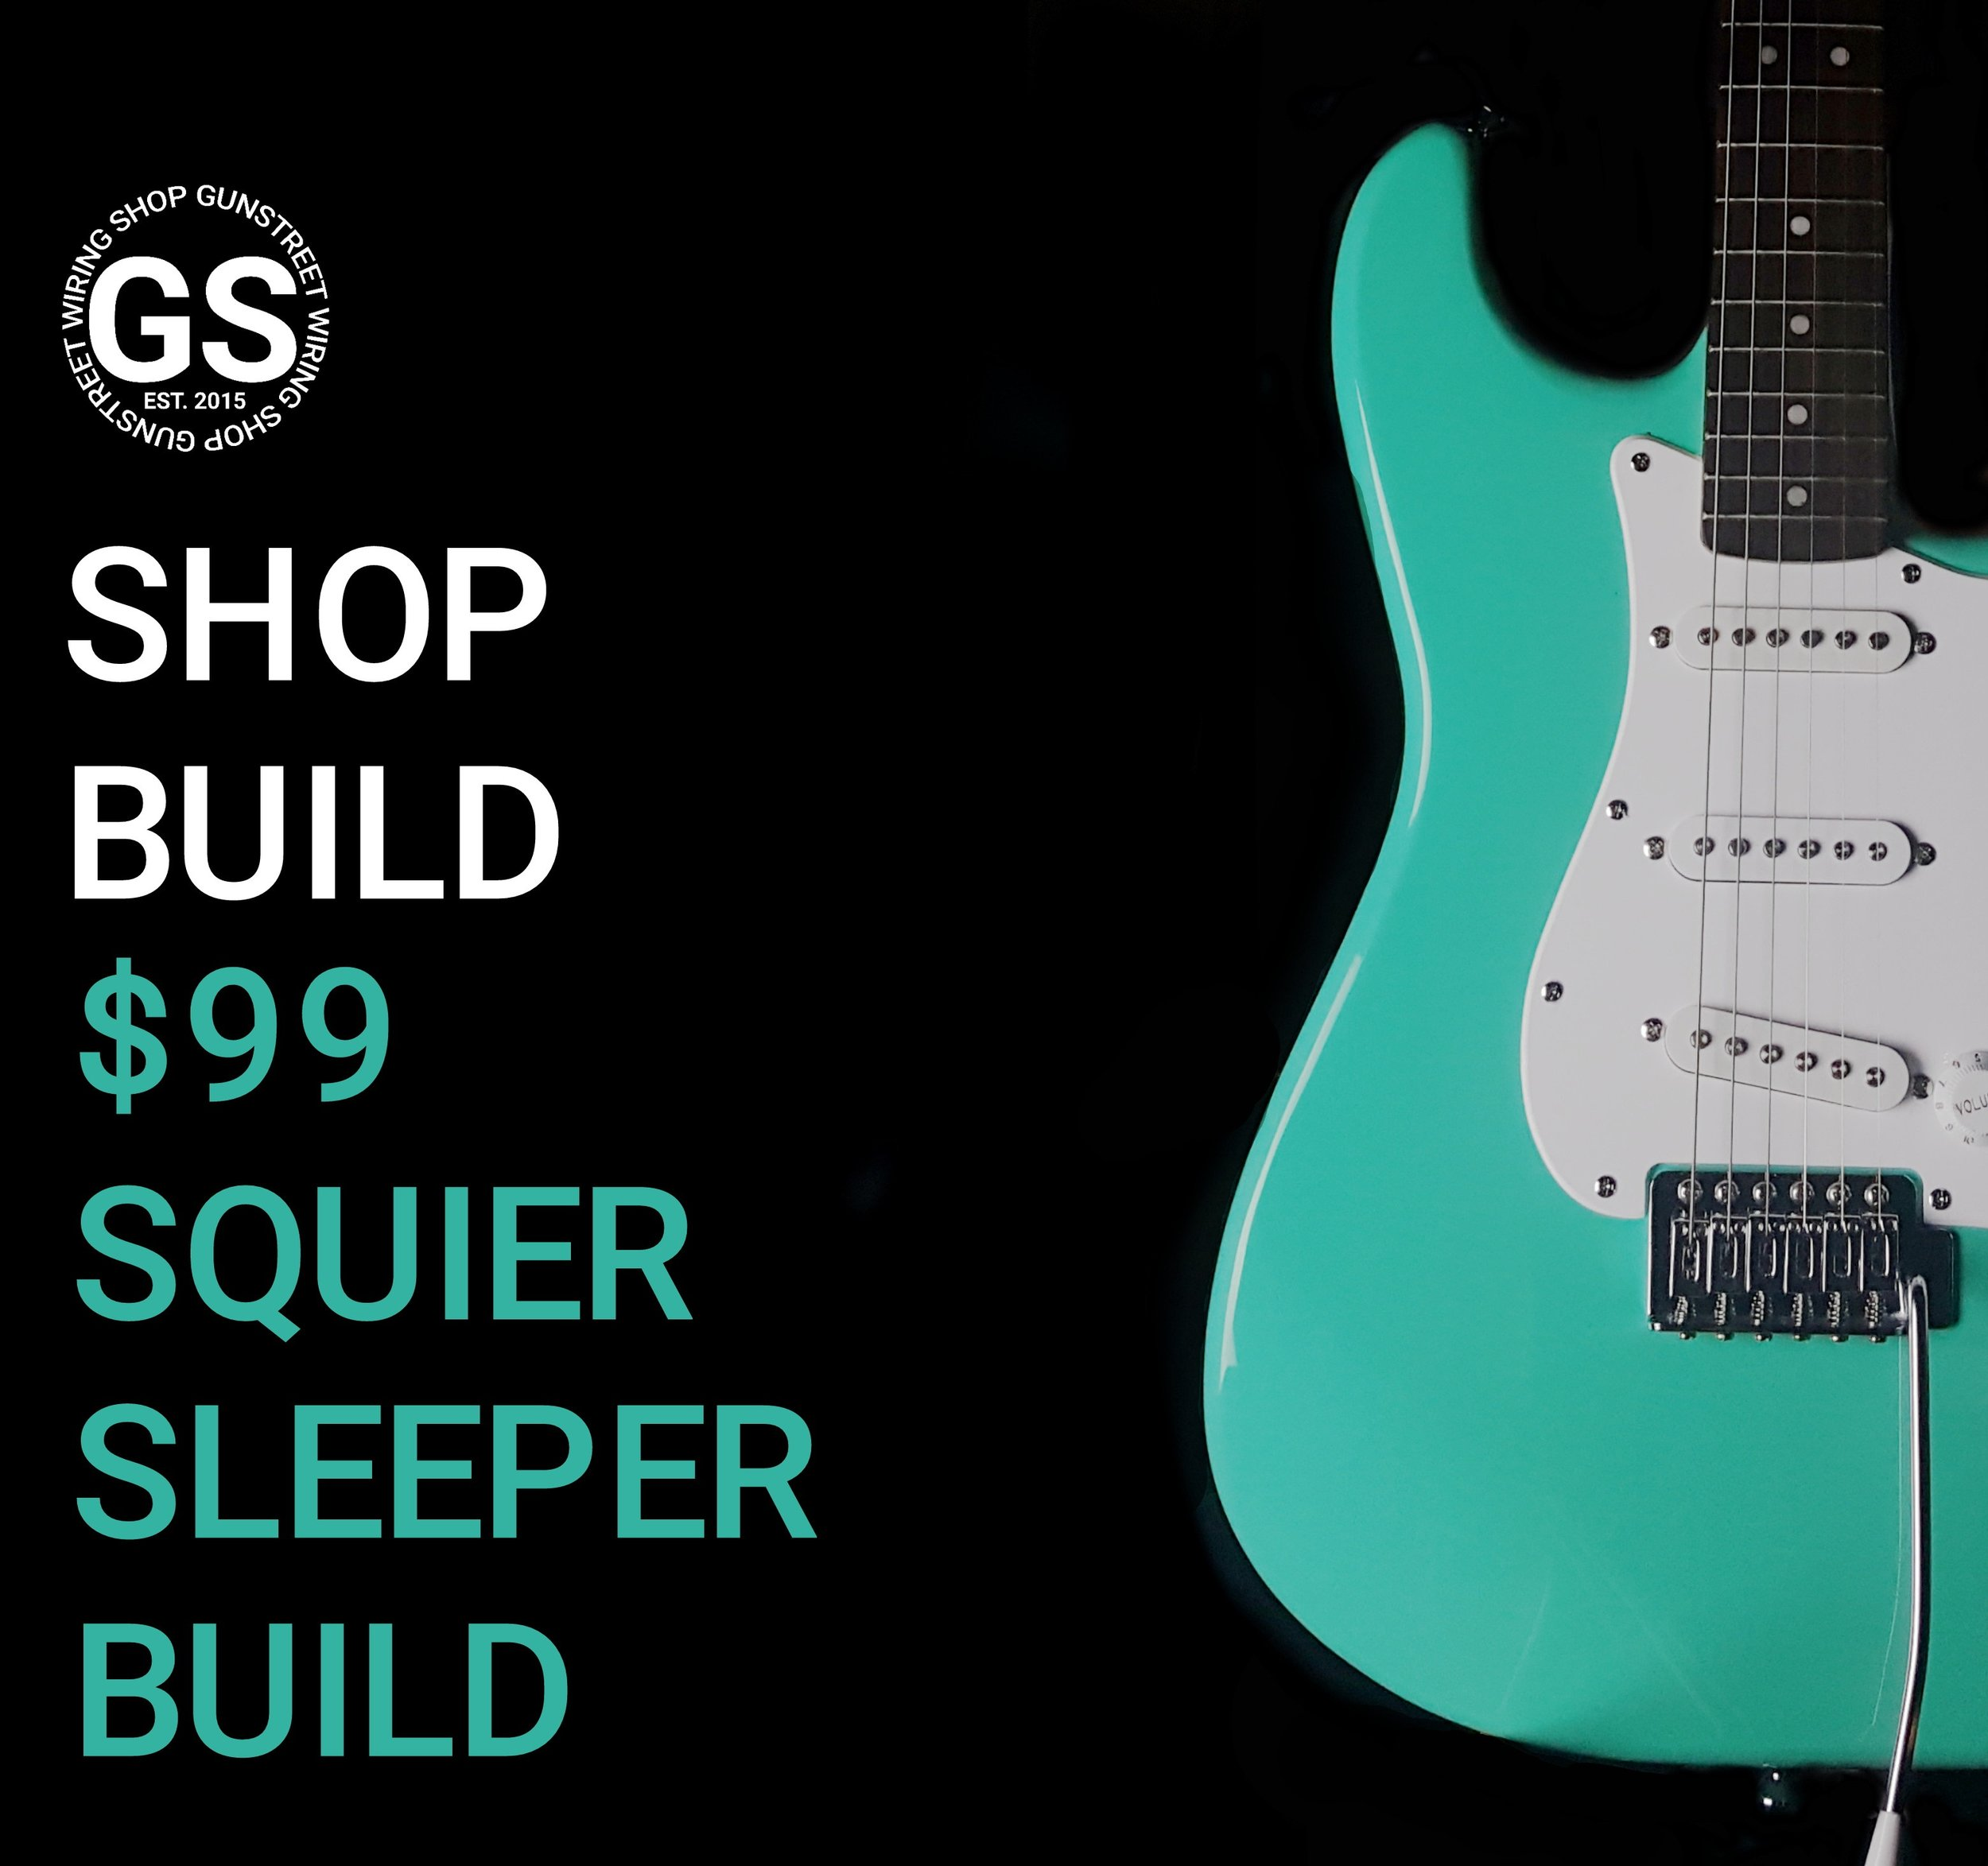 99 squier sleeper build.jpg